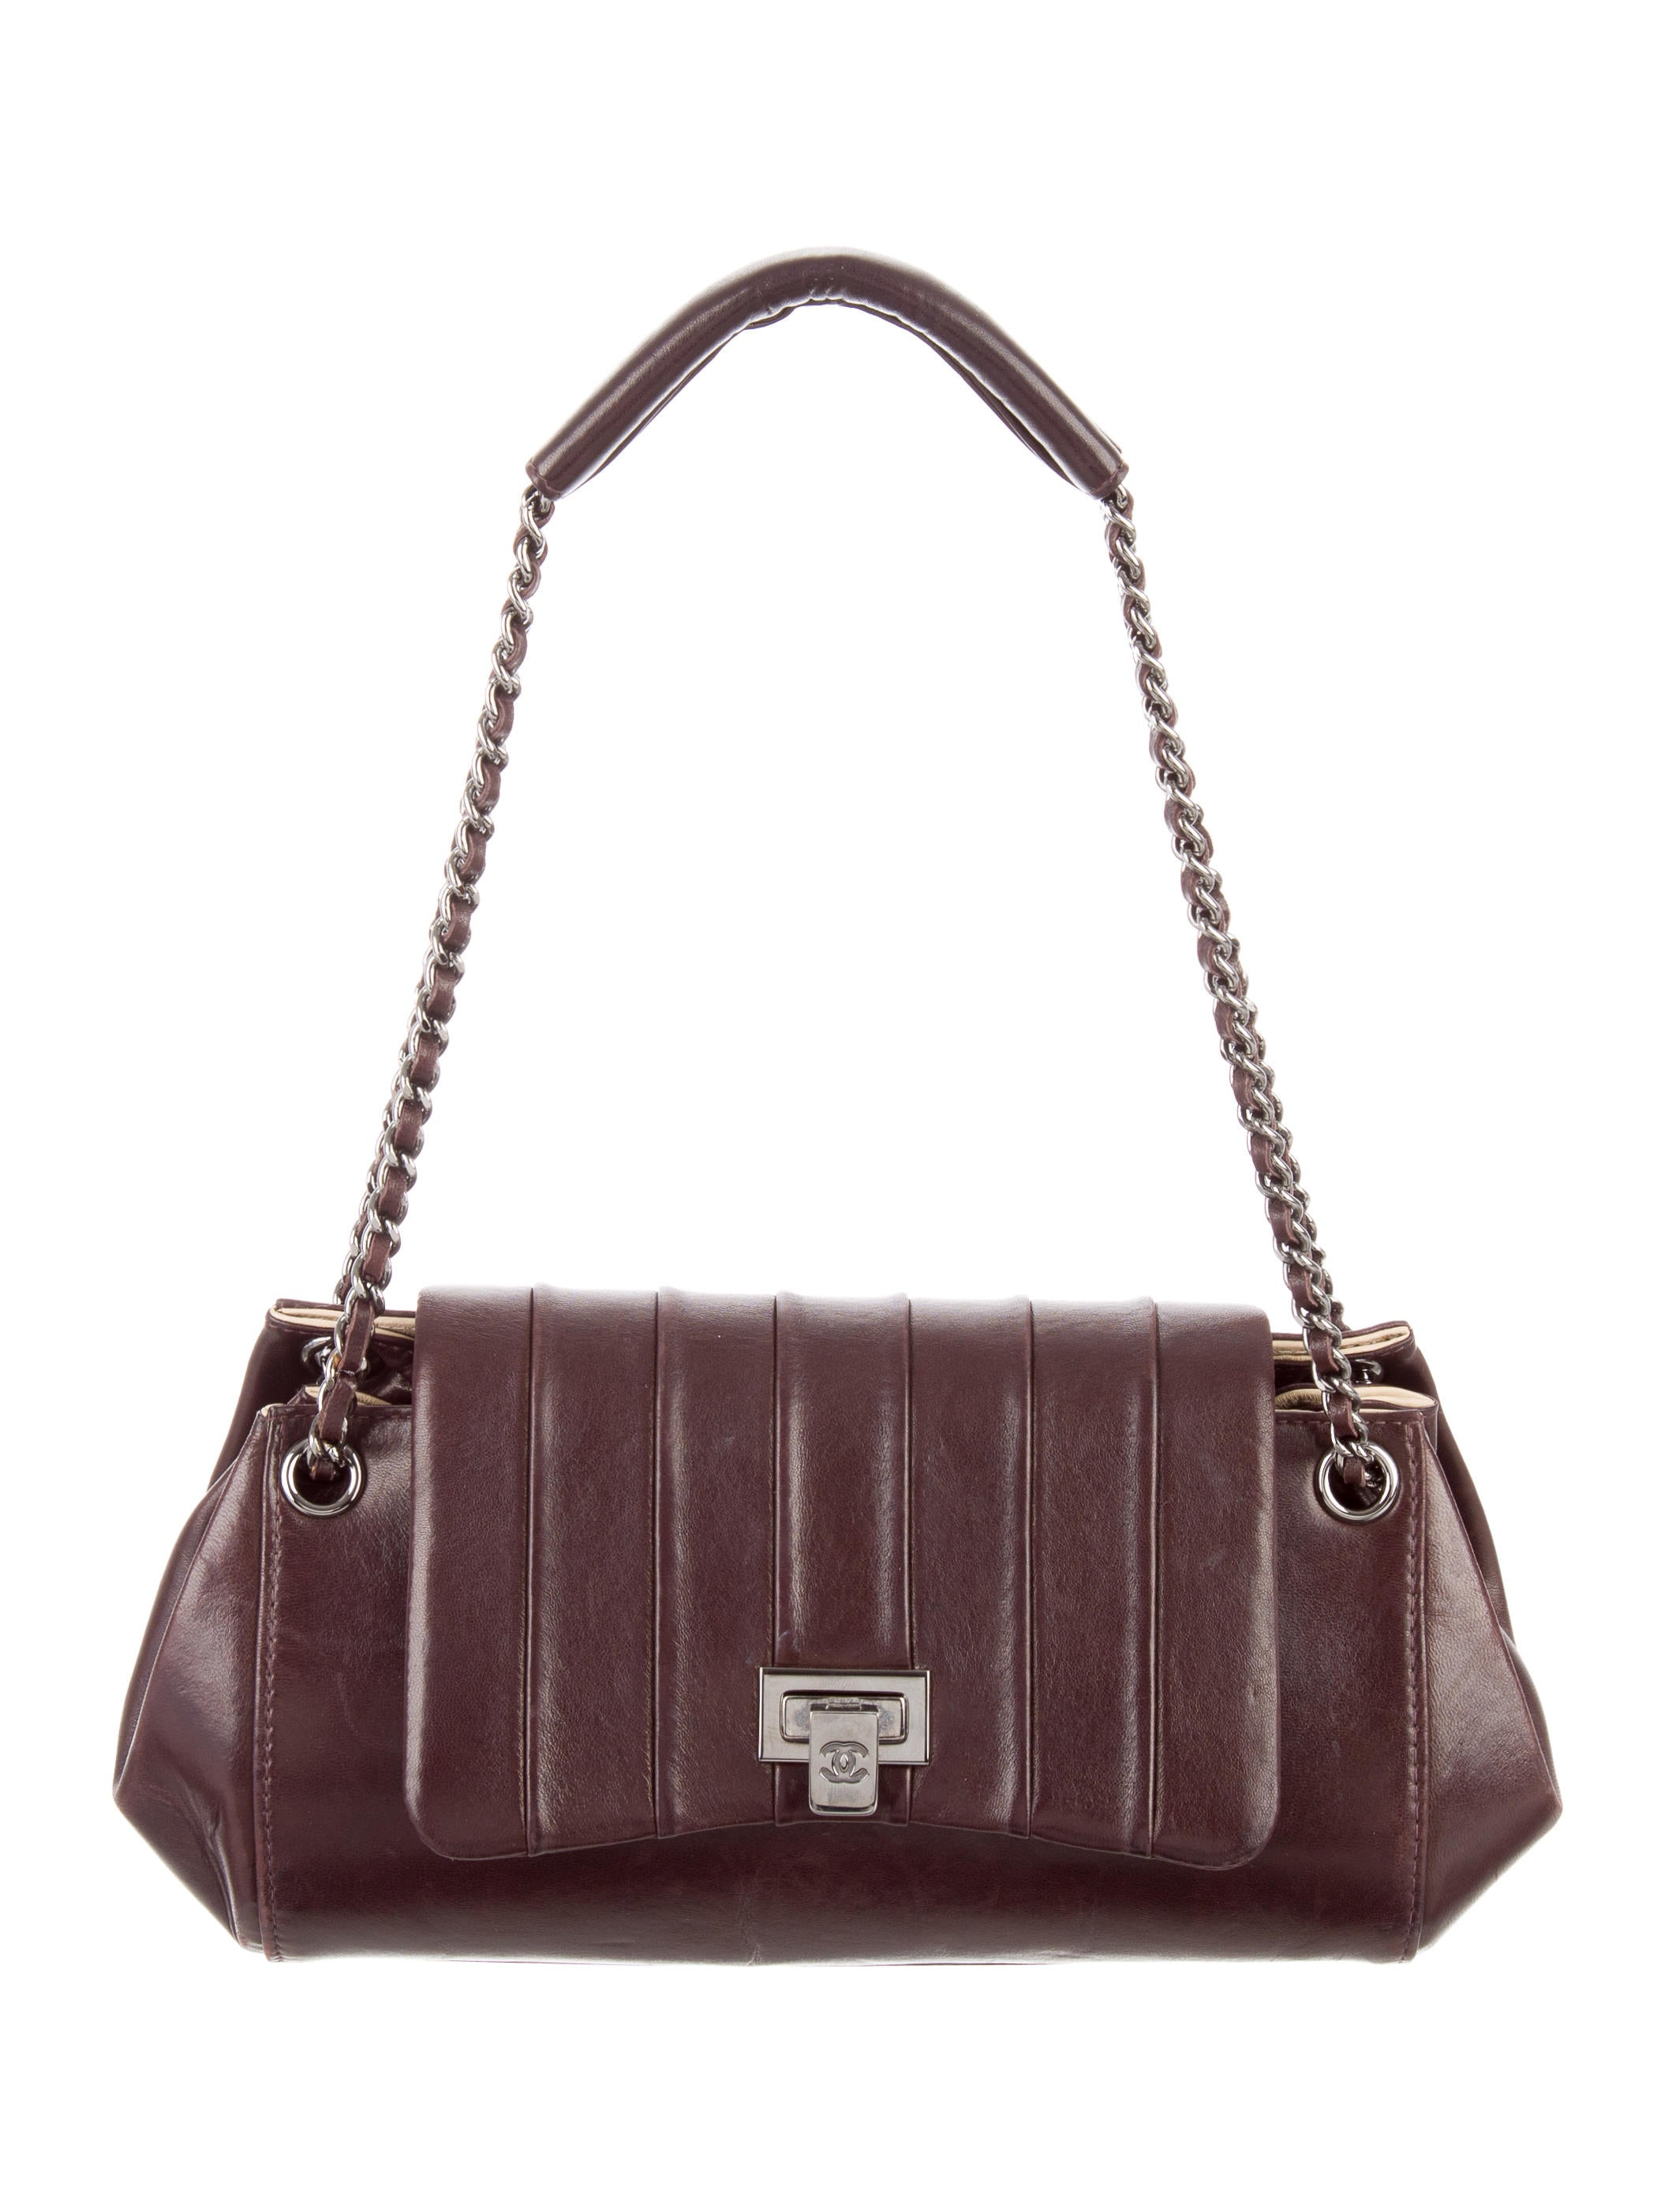 7aadf0996a19 Chanel Handbags Return Policy | Stanford Center for Opportunity ...